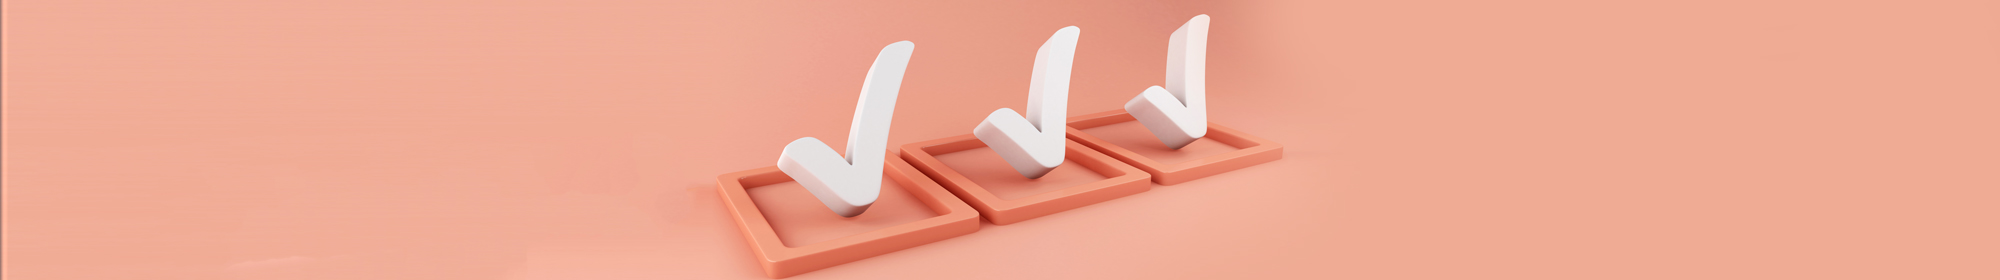 3d checkmarks in 3 boxes on soft peach background